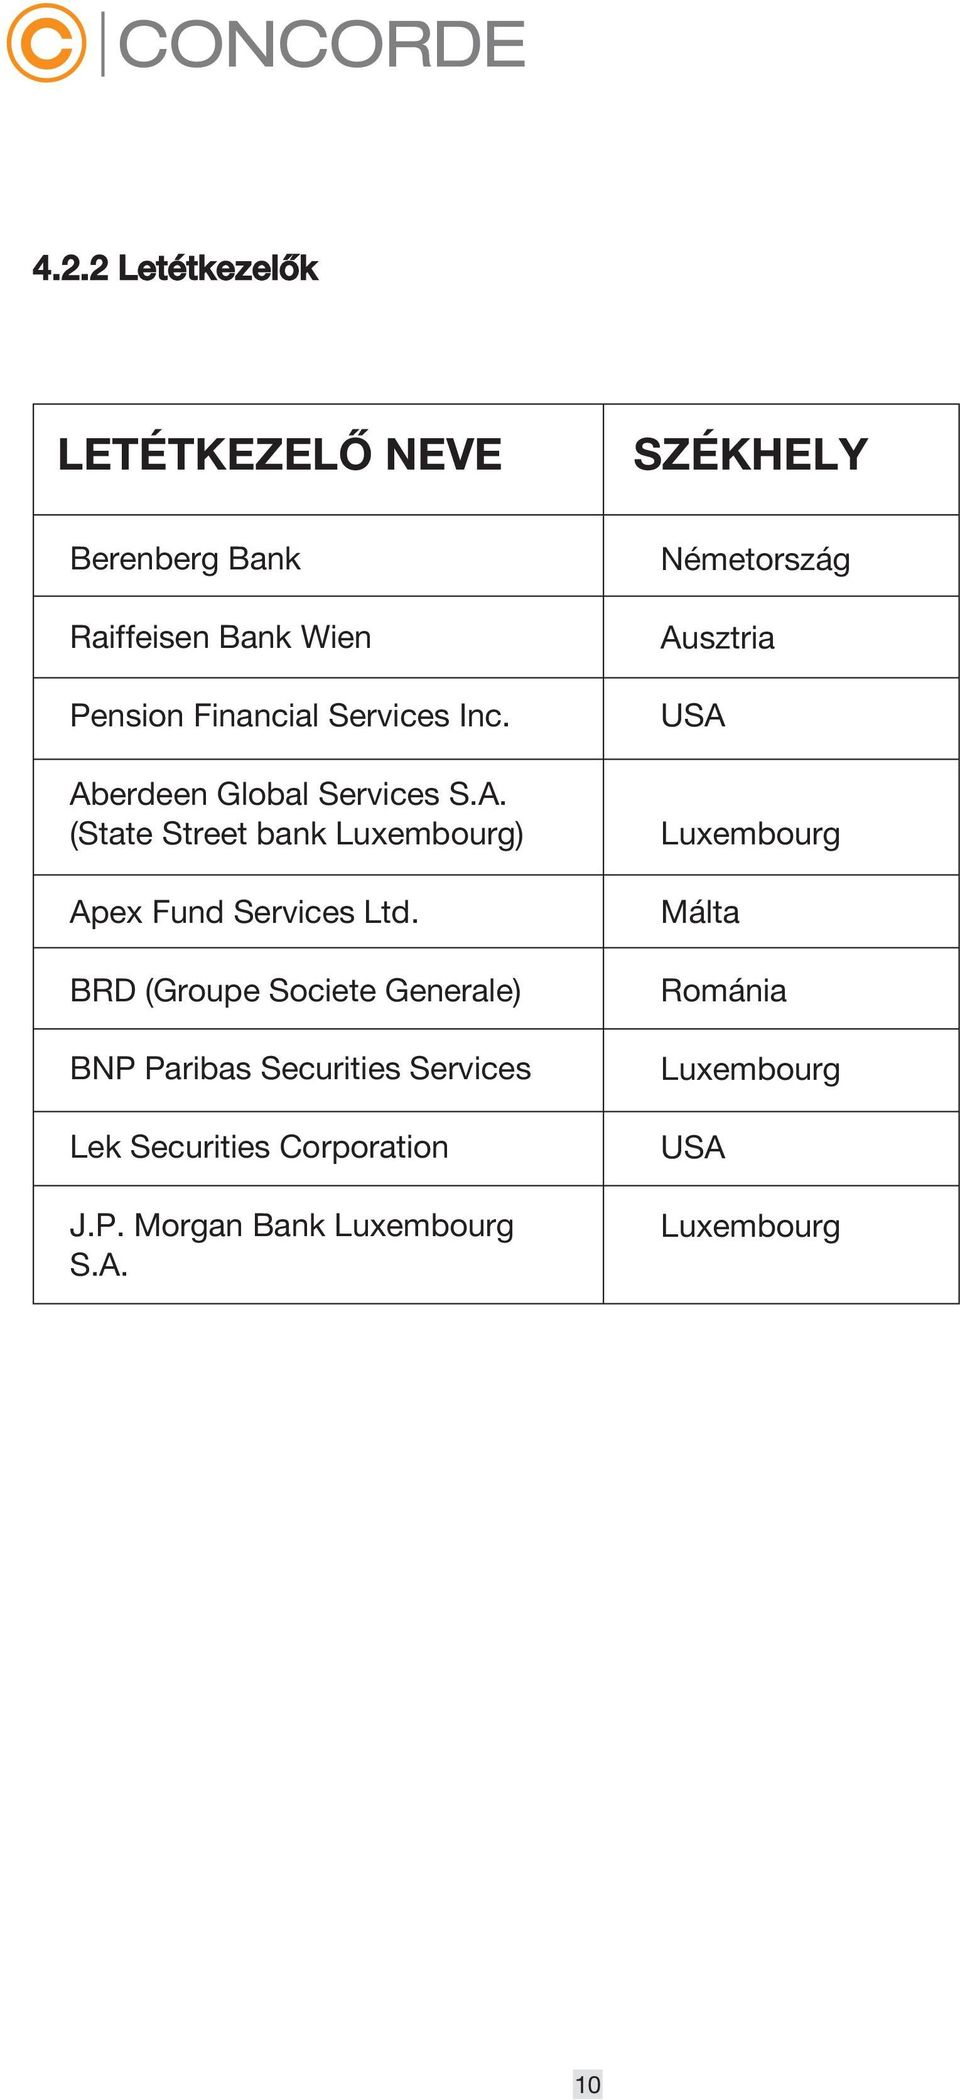 BRD (Groupe Societe Generale) BNP Paribas Securities Services Lek Securities Corporation J.P. Morgan Bank Luxembourg S.